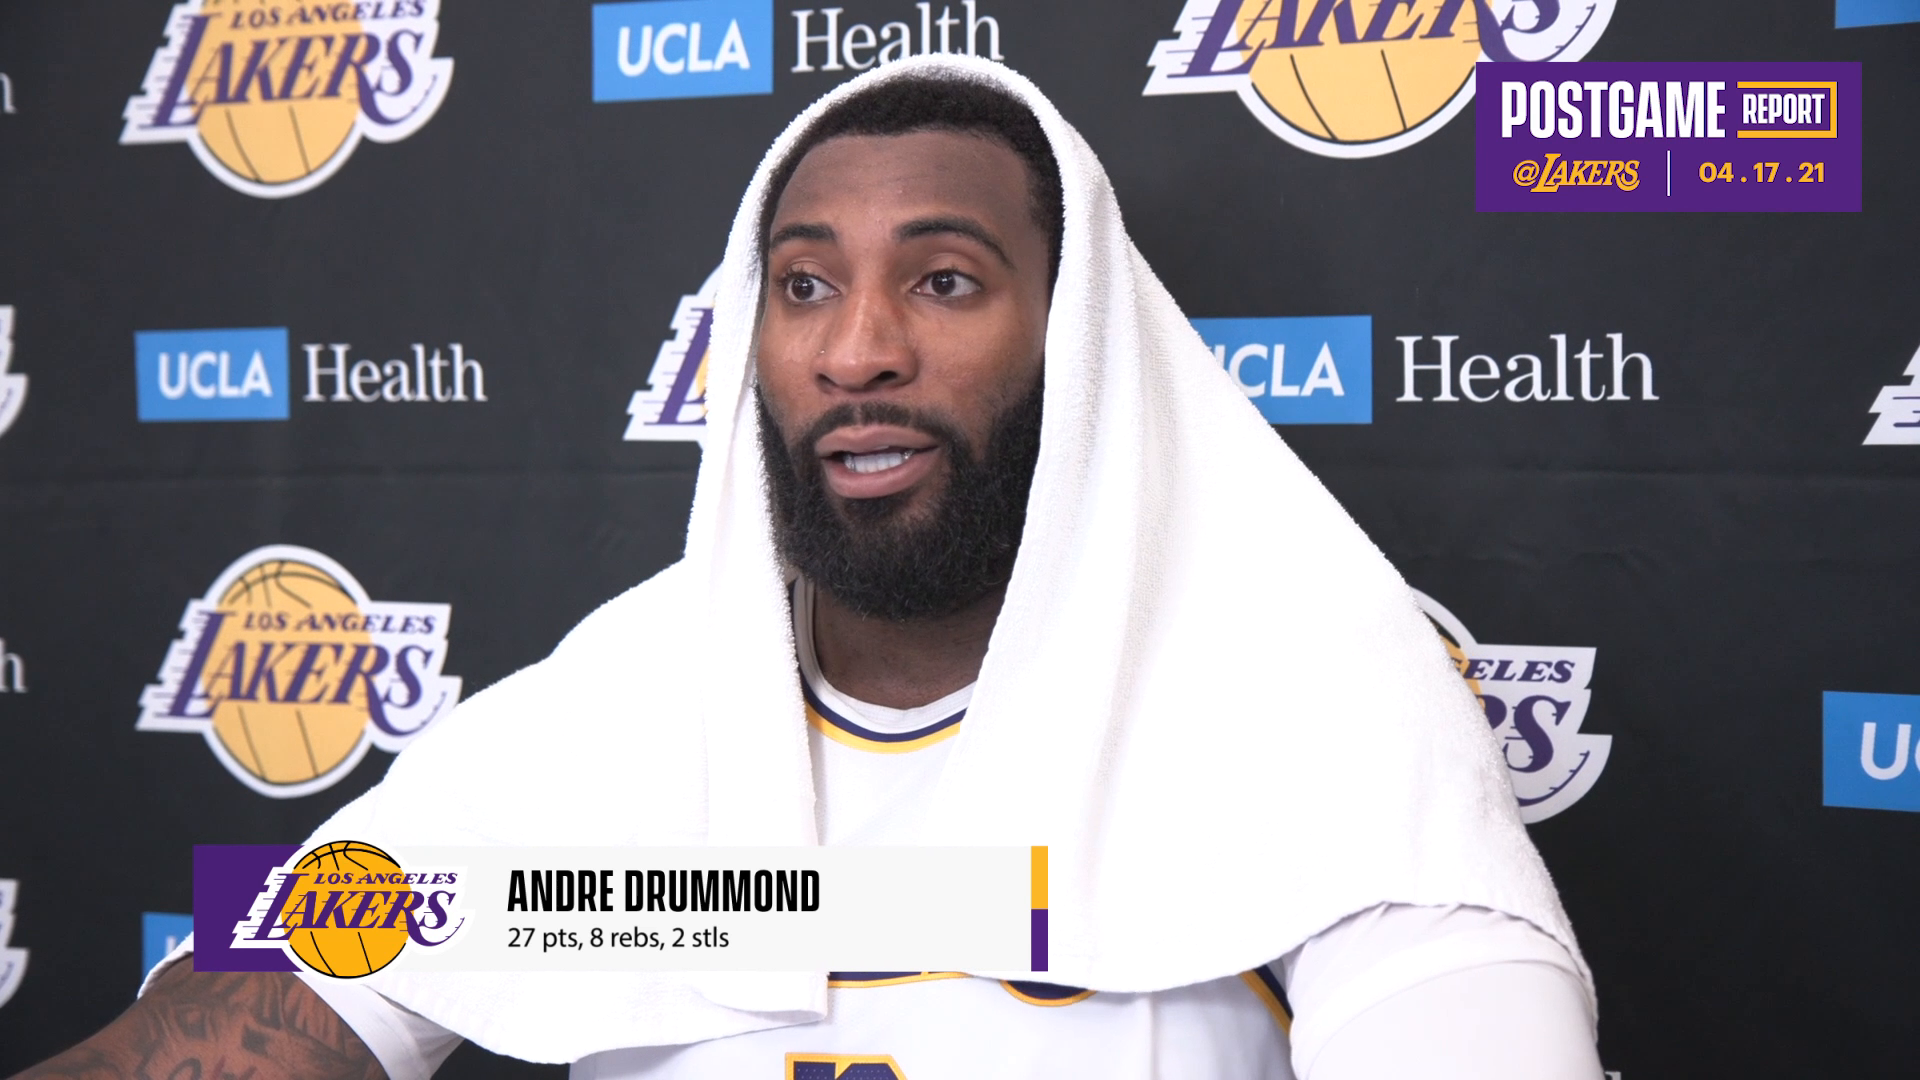 Lakers Postgame: Andre Drummond (4/17/21)